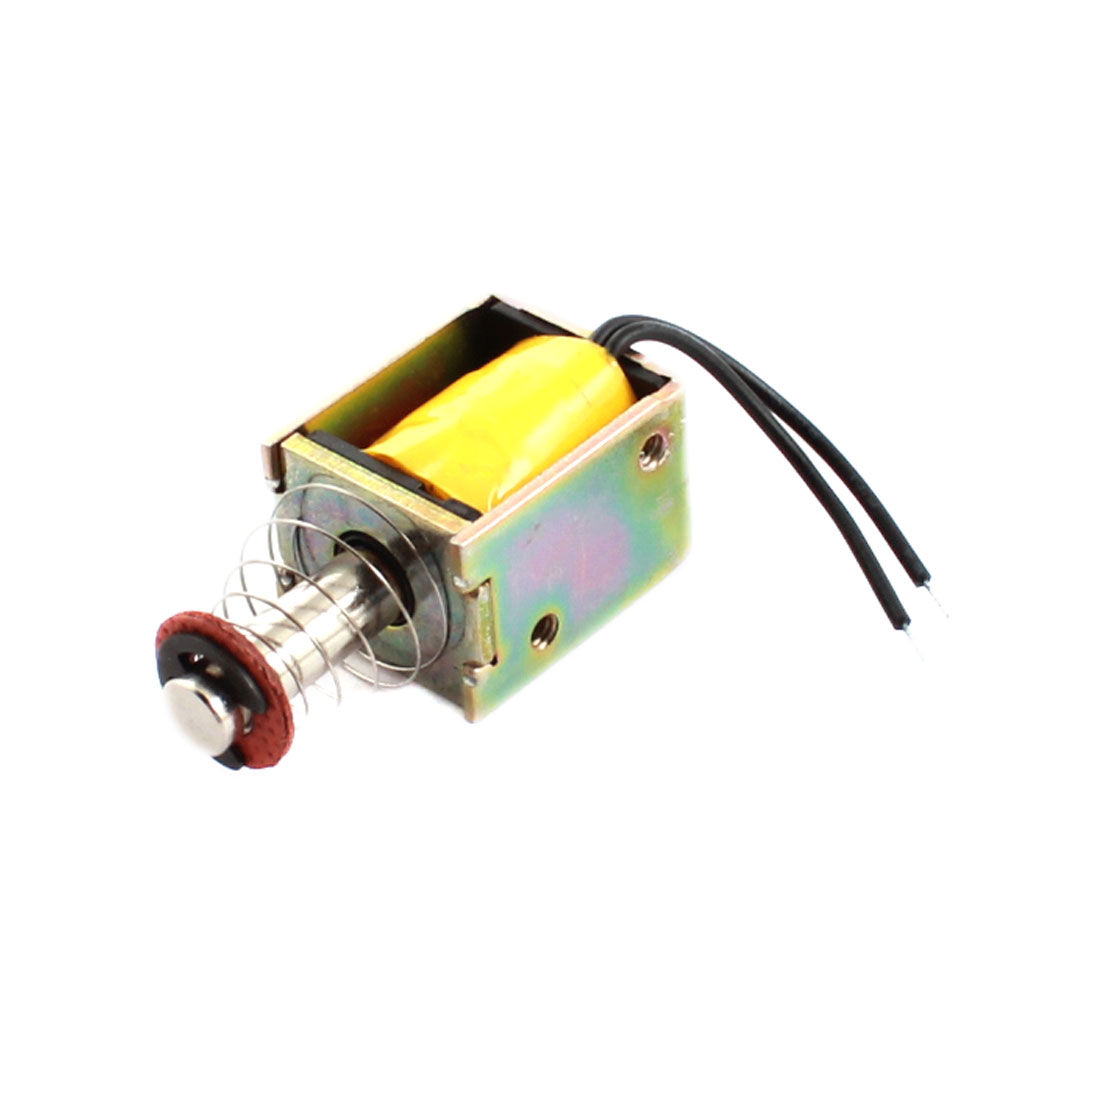 DC 14V 0.2A 2.8W 3mm 30g Open Frame Spring Plunger Linear Motion Push Pull Type Solenoid Electromagnet Actuator